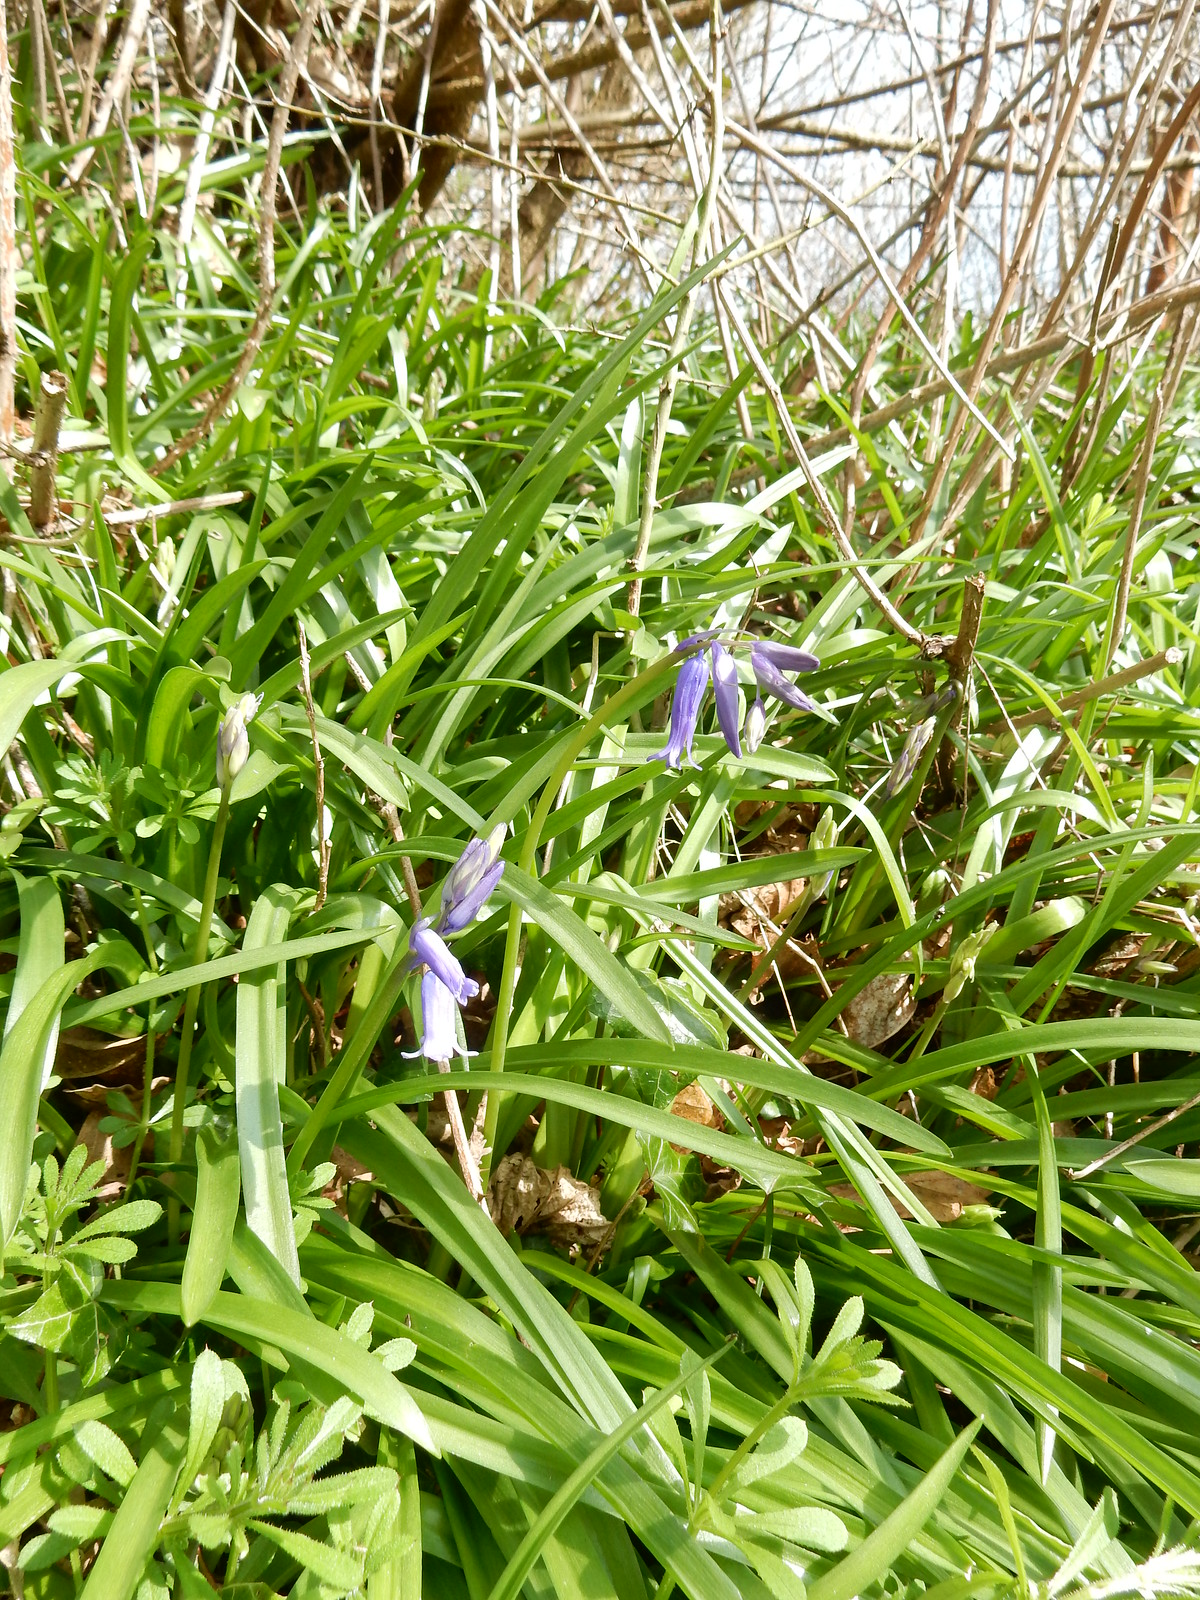 The year's first bluebell Sevenoaks Circular. I claim the prize. What is the prize?